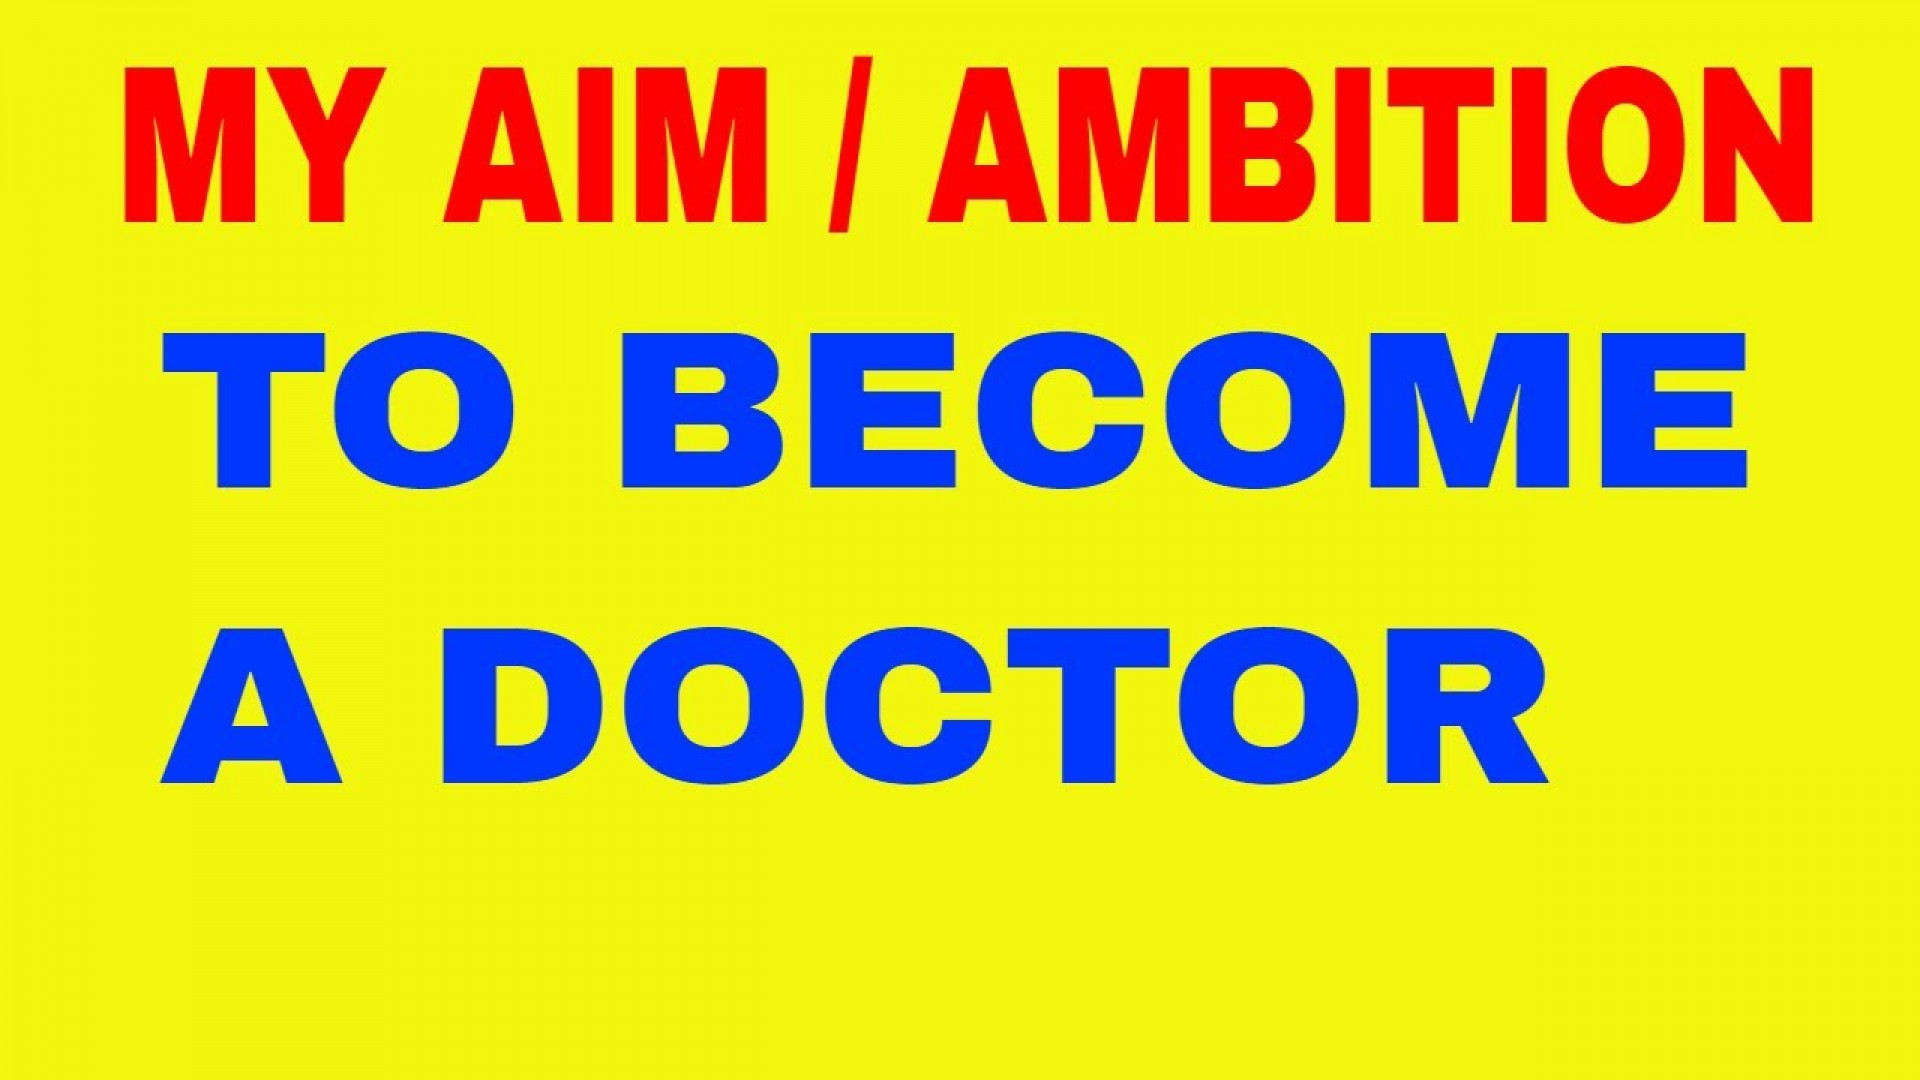 007 Essay My Ambition Doctor Example Stupendous About In Tamil Hindi On To Become A For Class 10 1920